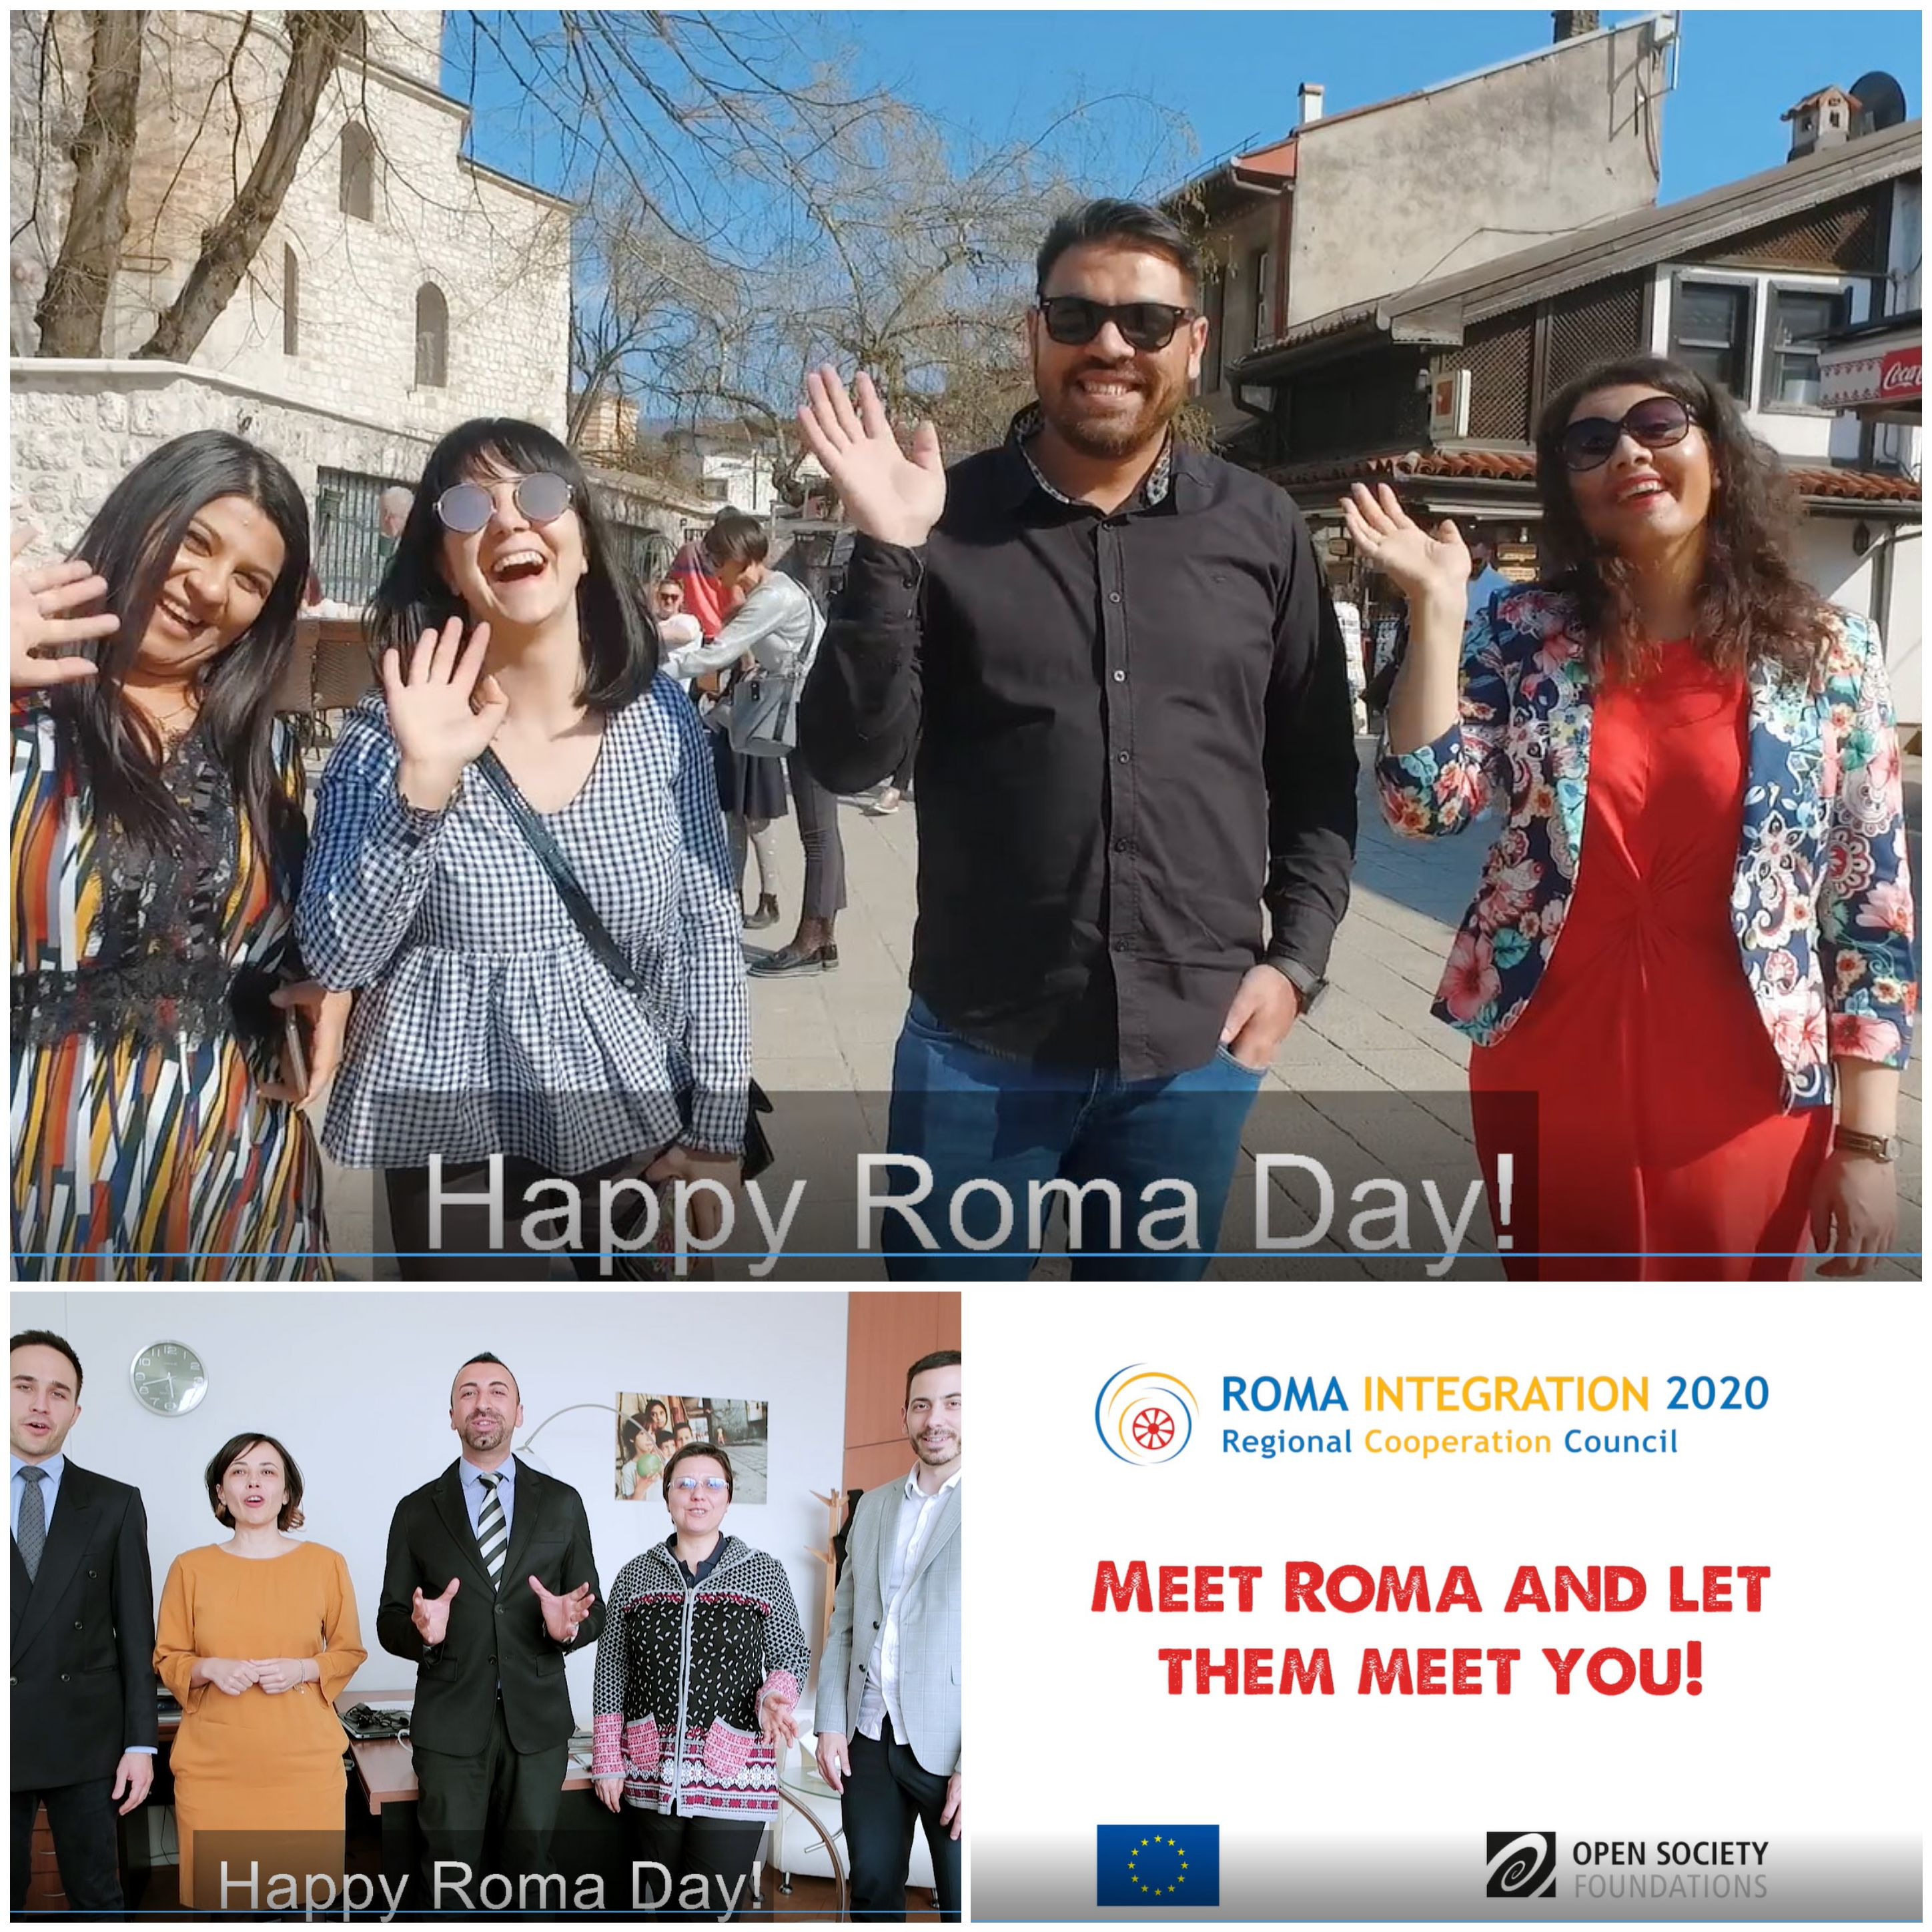 Regional Cooperation Council (RCC) and it's project Roma Integration 2020 are marking 8 April, International Roma Day (Photo: RCC/Klicker)